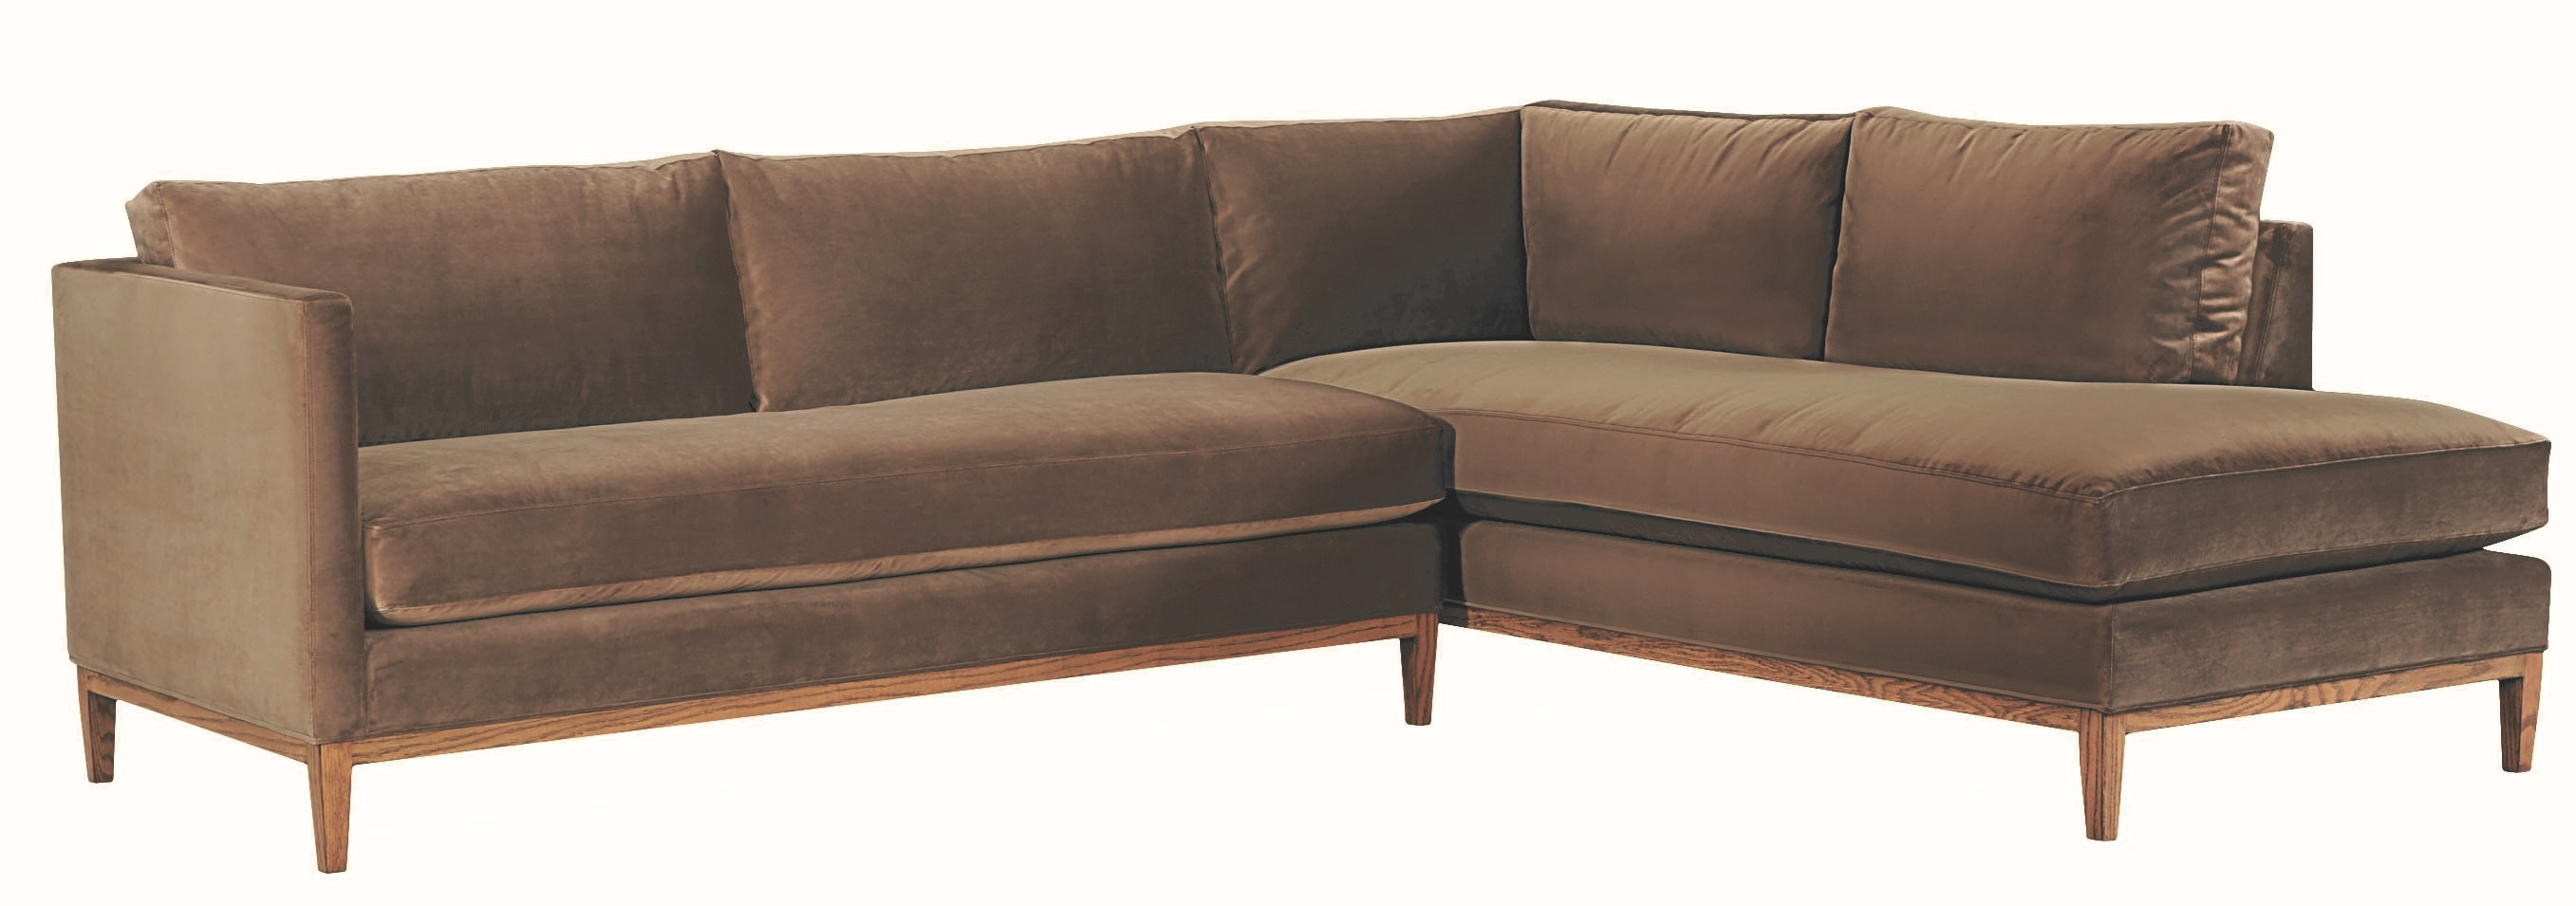 Lee Industries Furniture Toms Price Furniture Chicago Suburbs